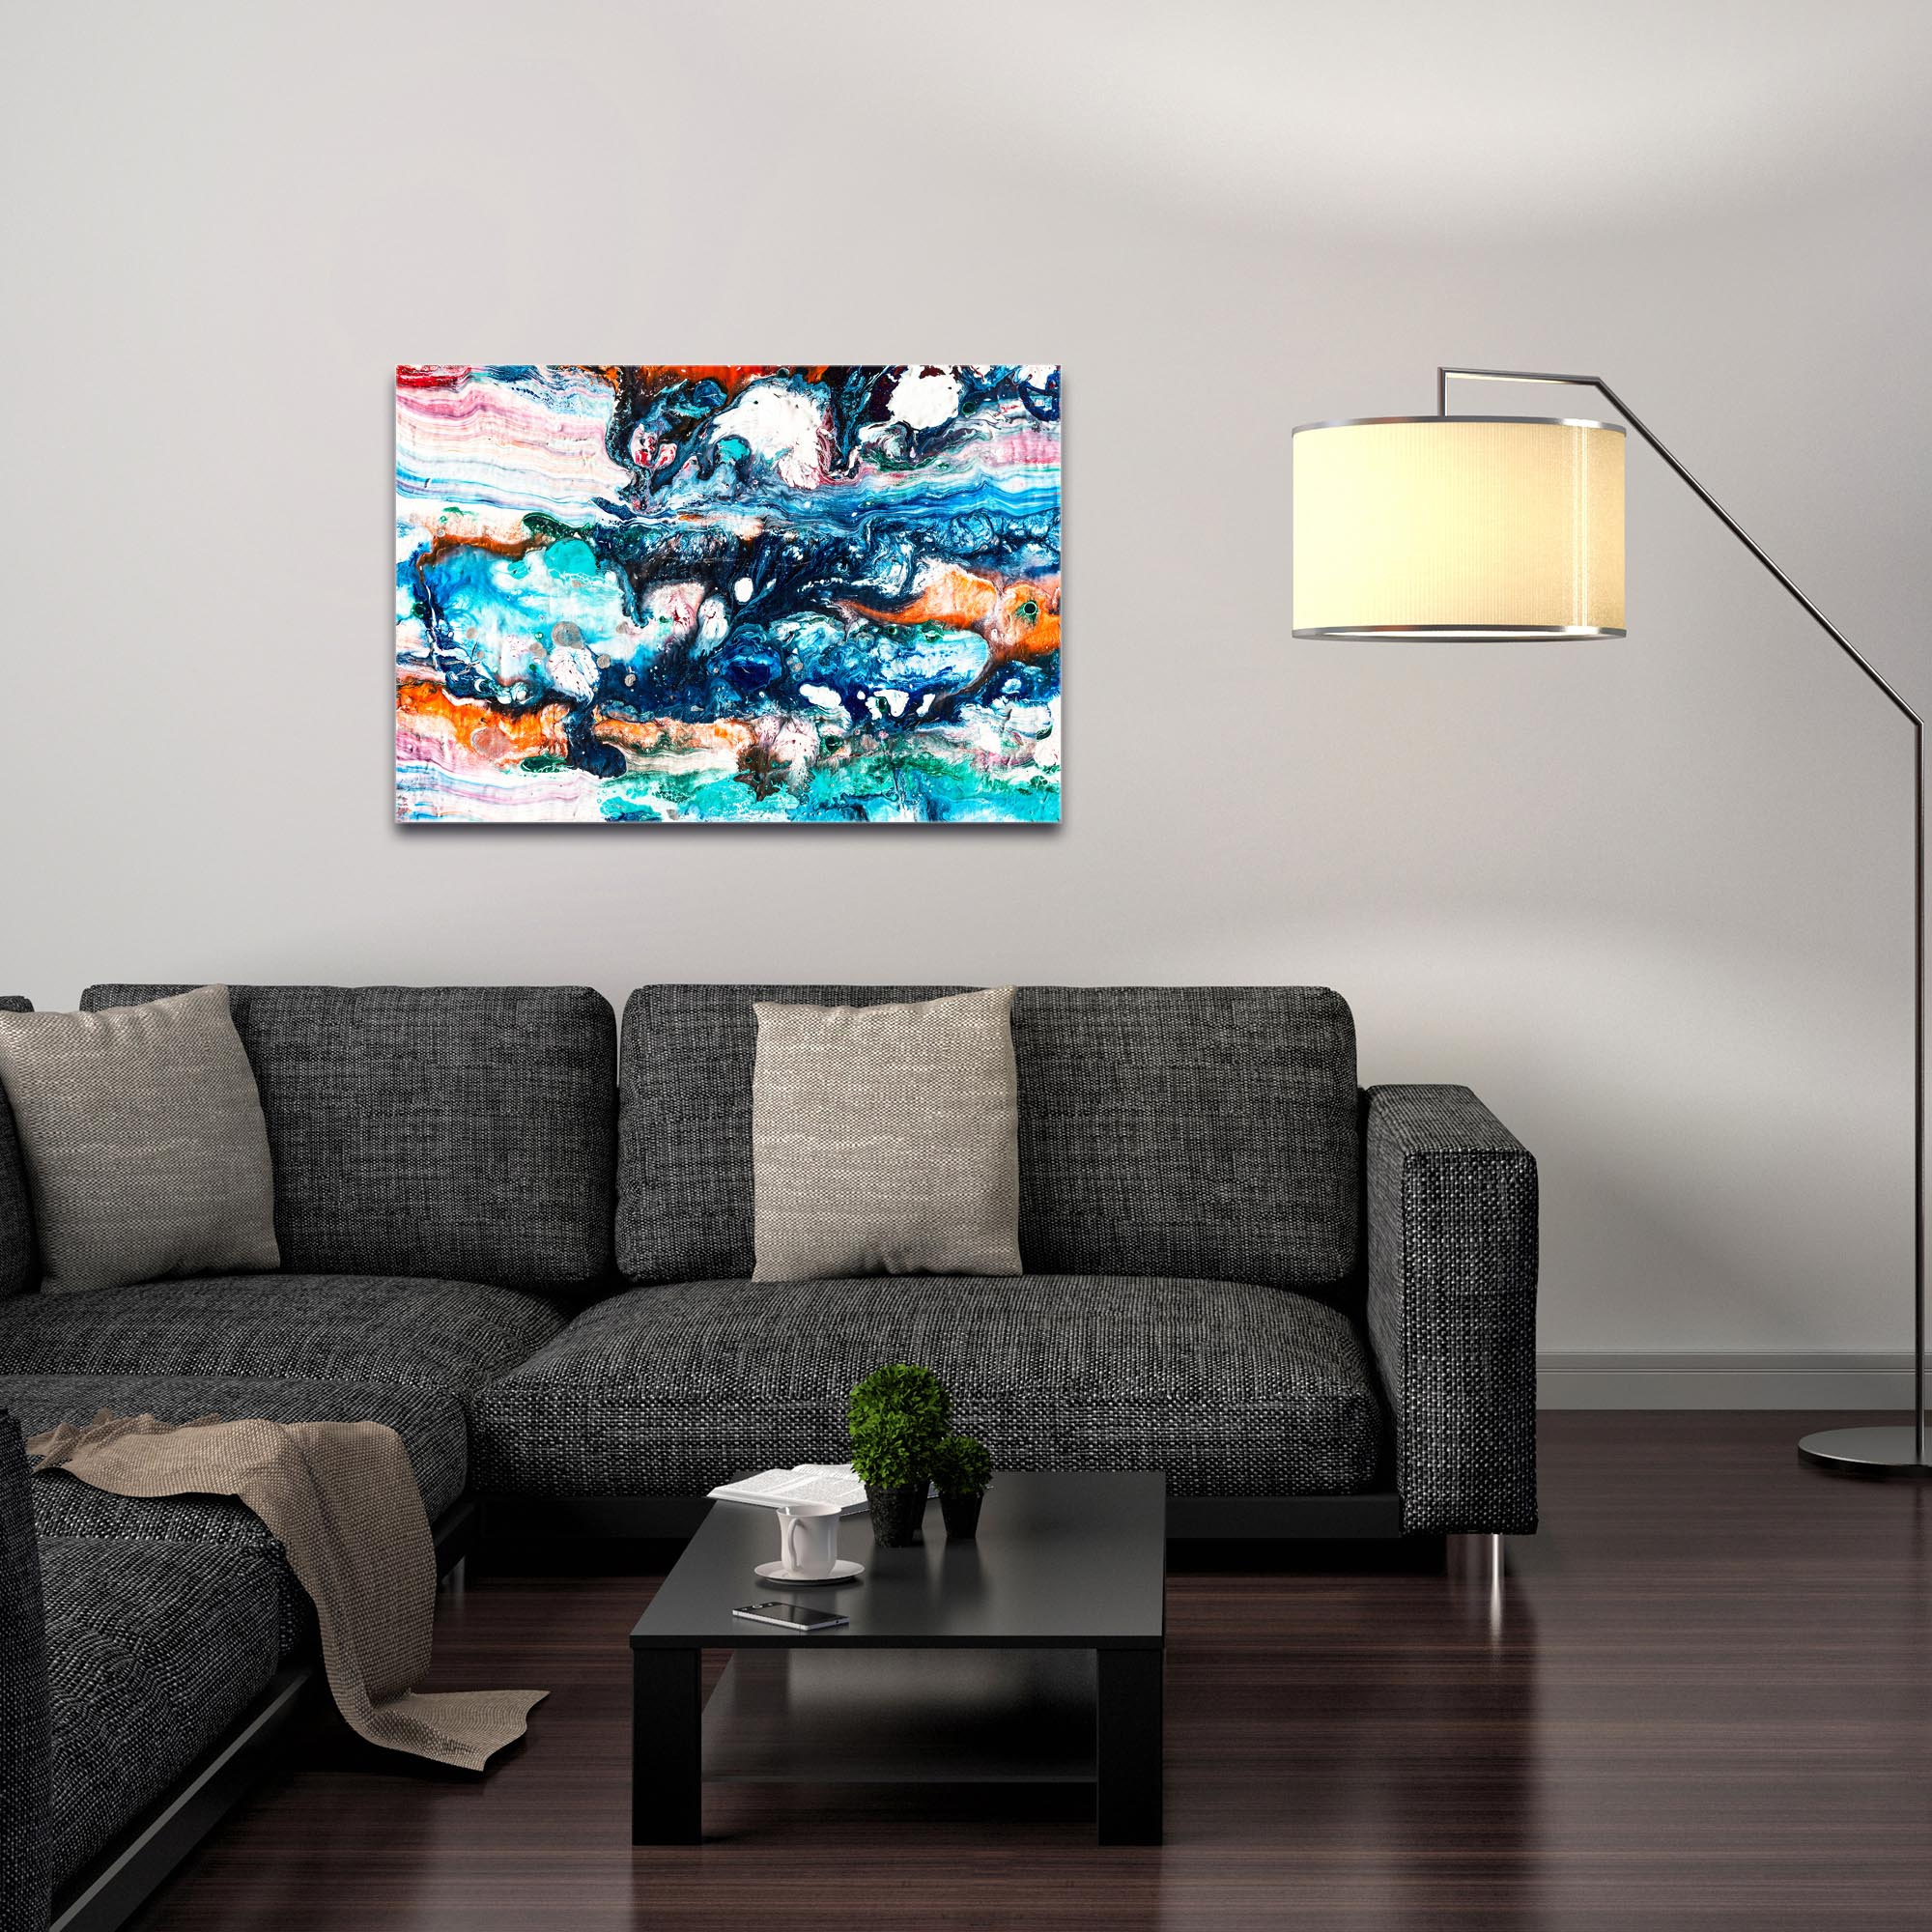 Abstract Wall Art 'Sunset On Her Breath 4' - Colorful Urban Decor on Metal or Plexiglass - Image 3